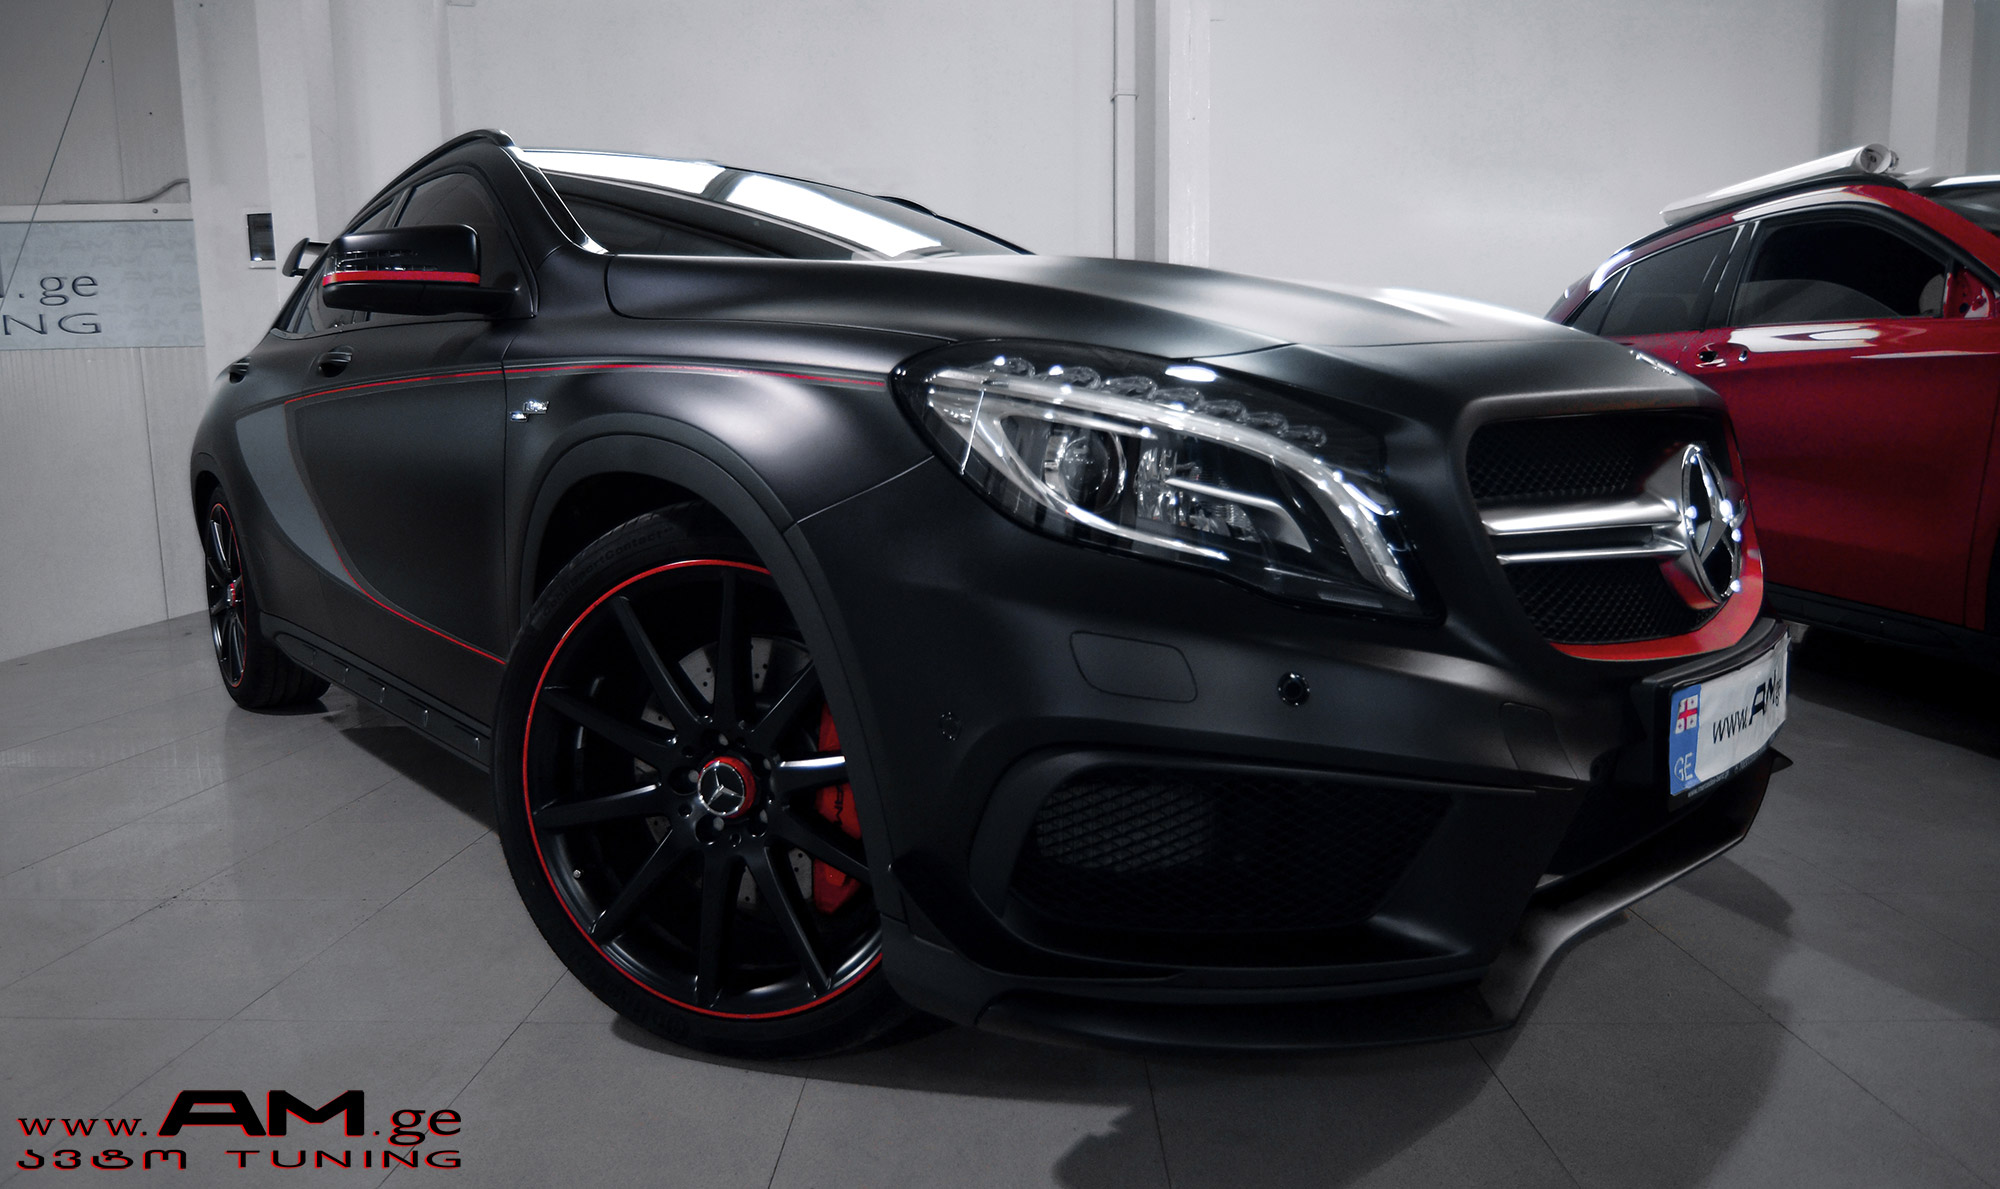 MB GLA 45 AMG | Car Wrapping | AUTO.AM.GE